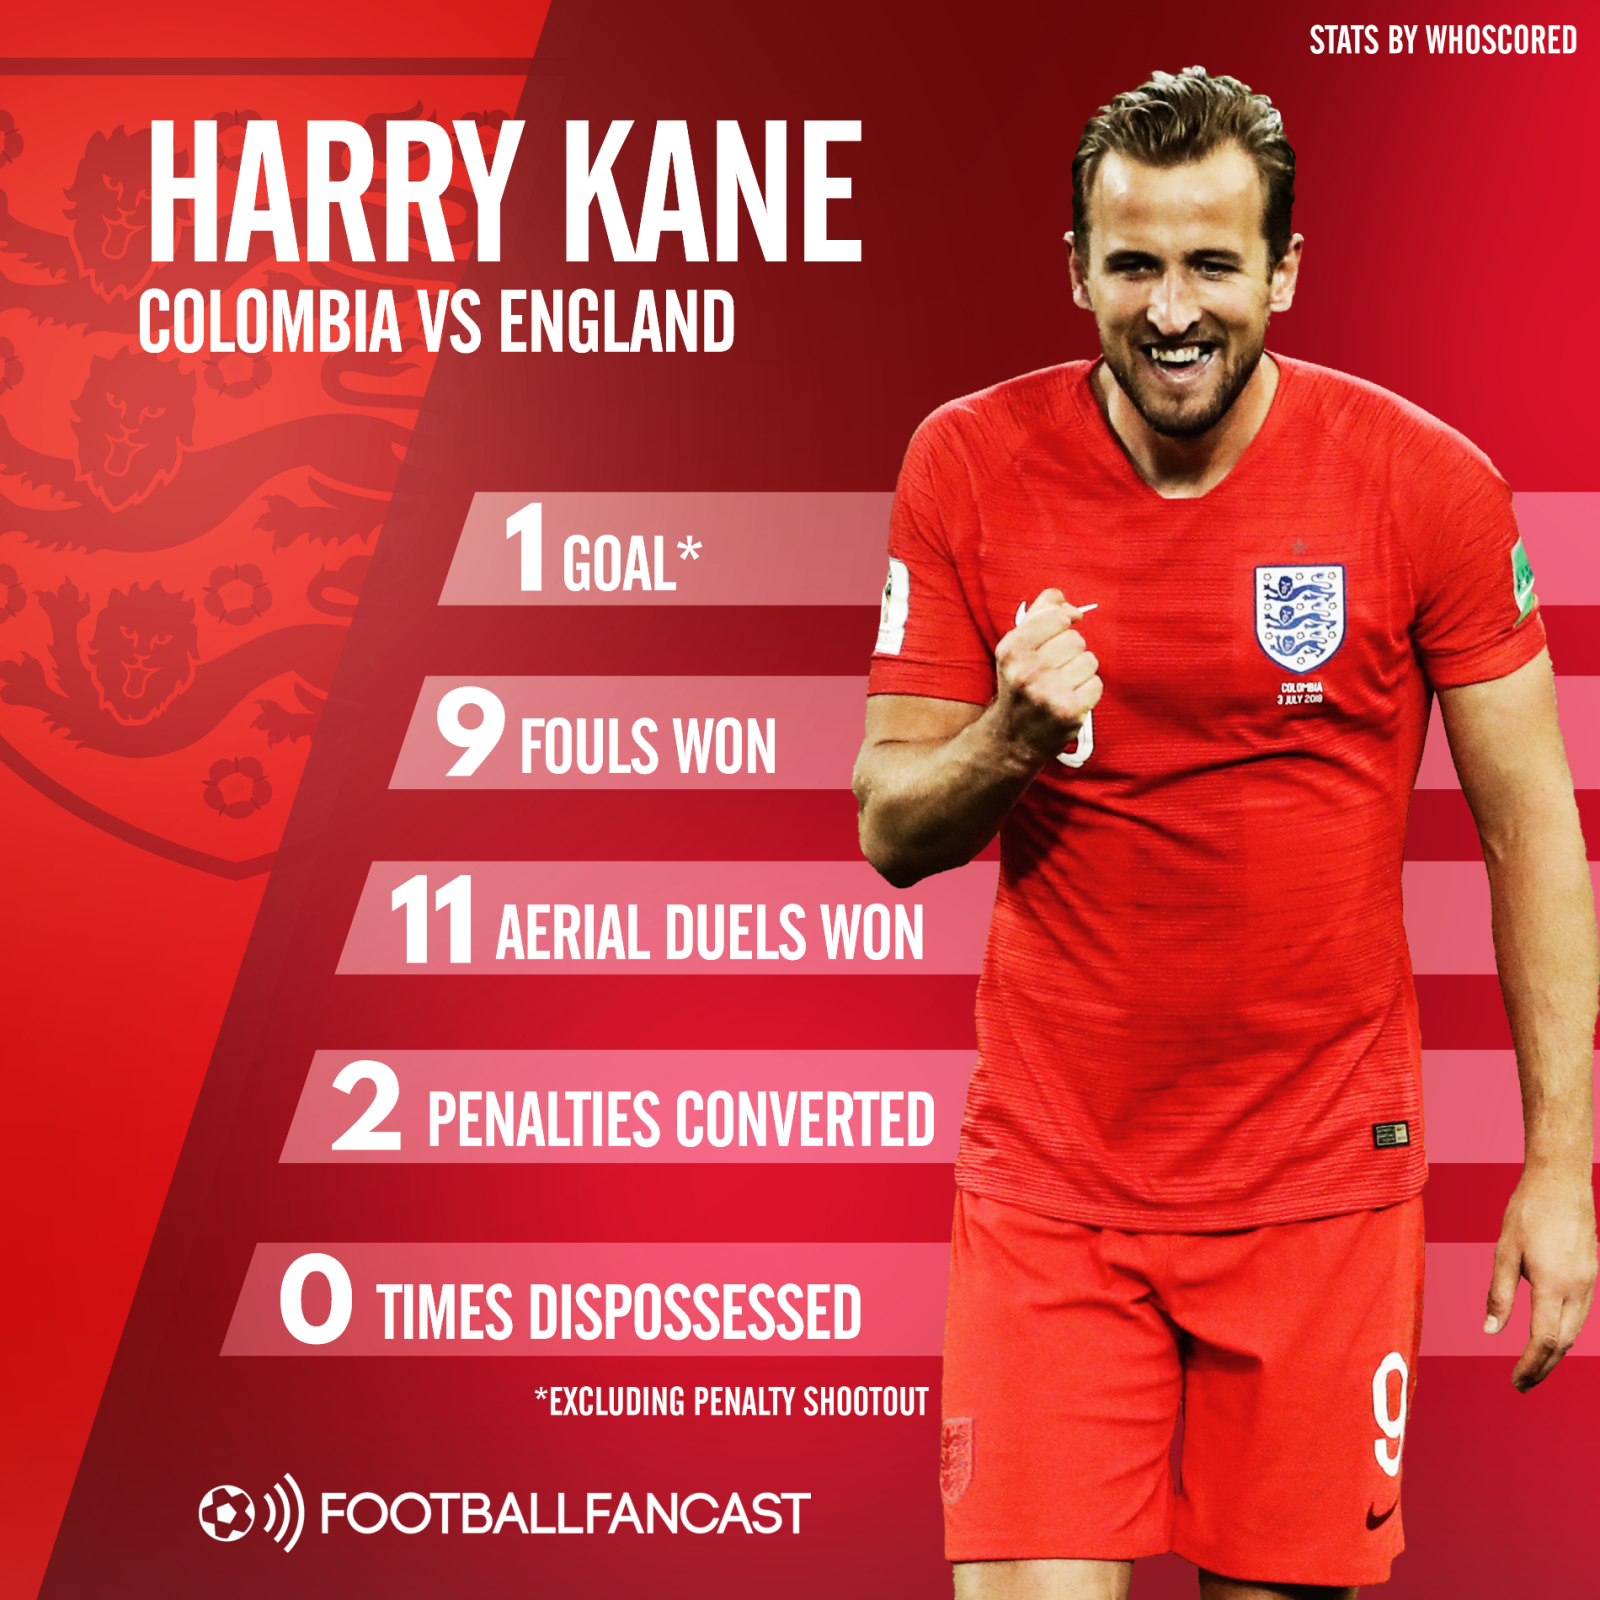 Harry Kane's stats from England's win over Colombia